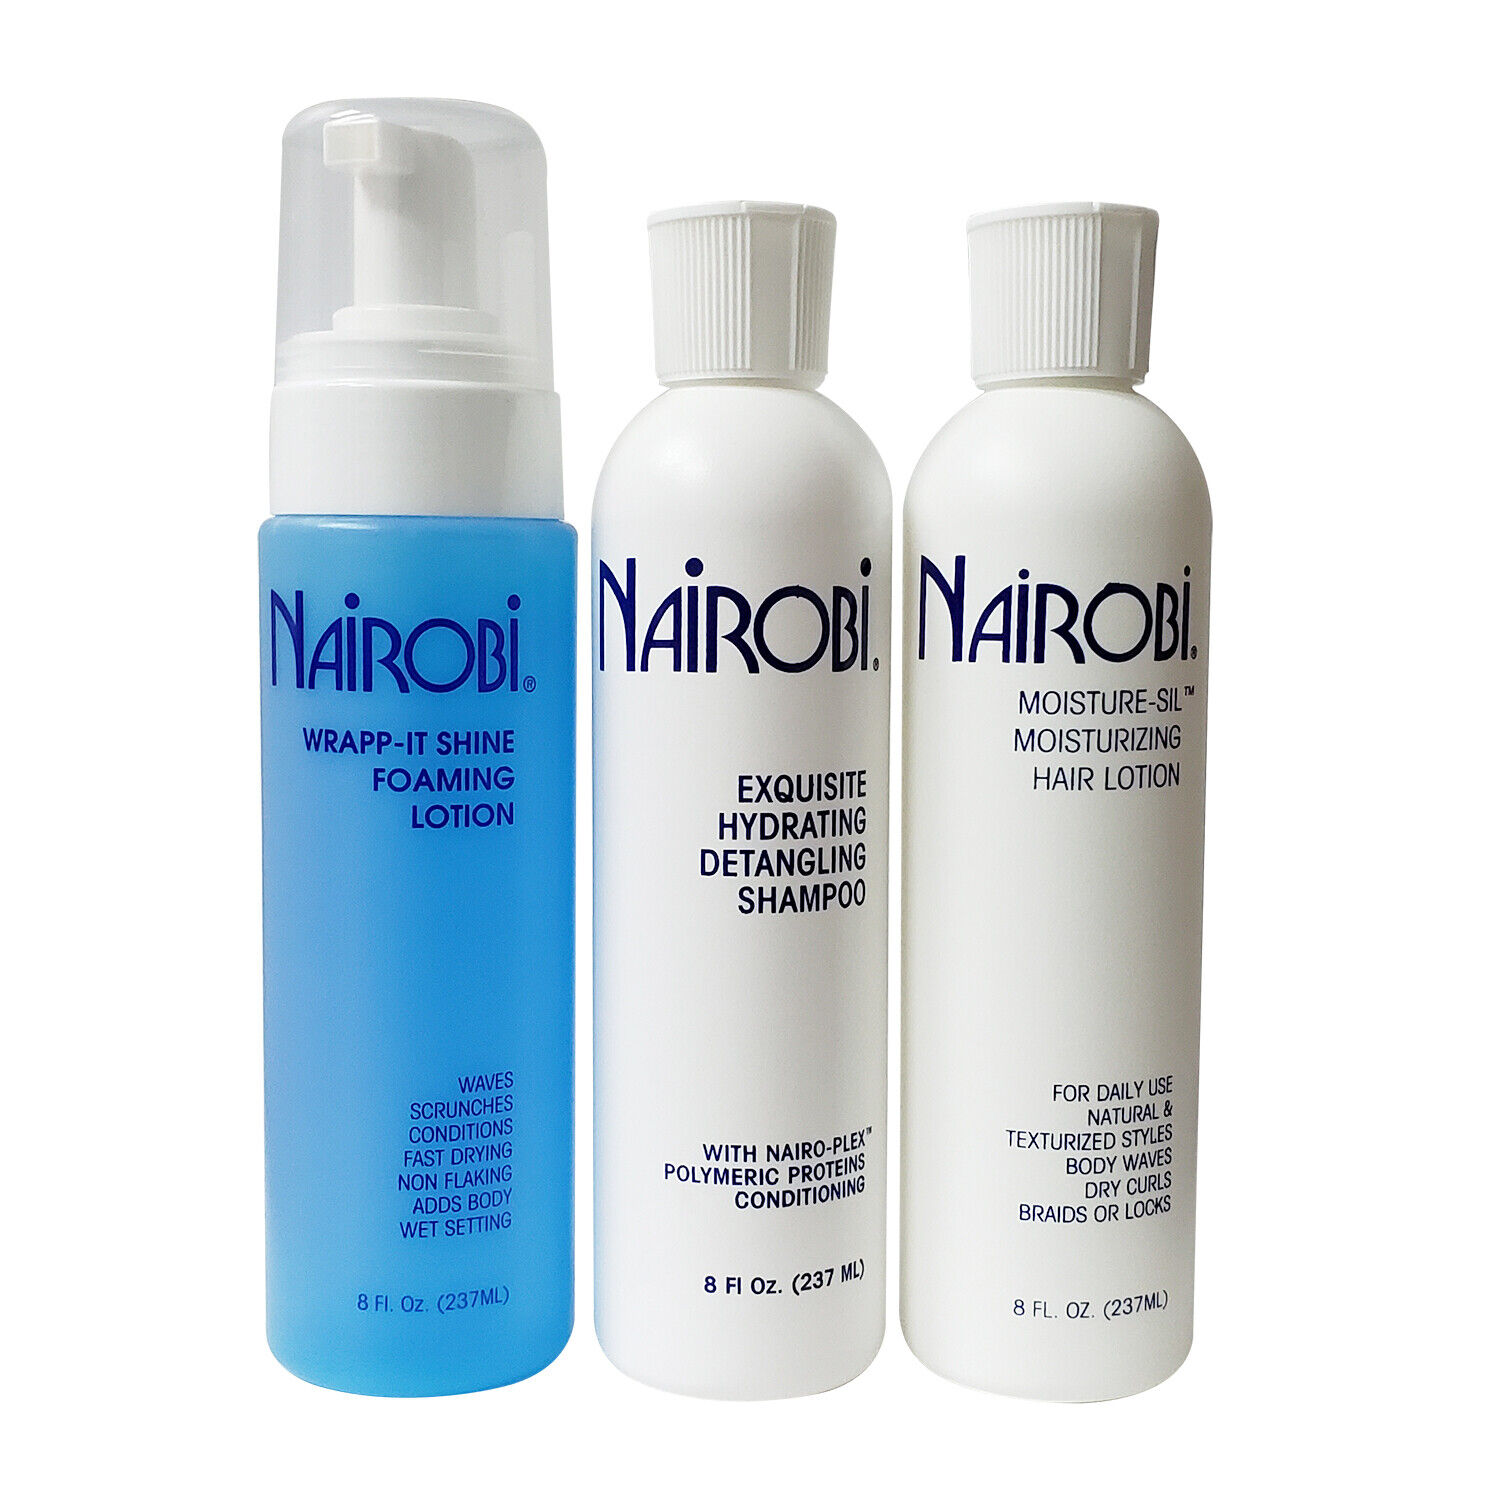 Nairobi Hydrating Shampoo / FoamWrap Lotion / Moisture Sil Hair Lotion 8 Oz. SET Hair Care & Styling